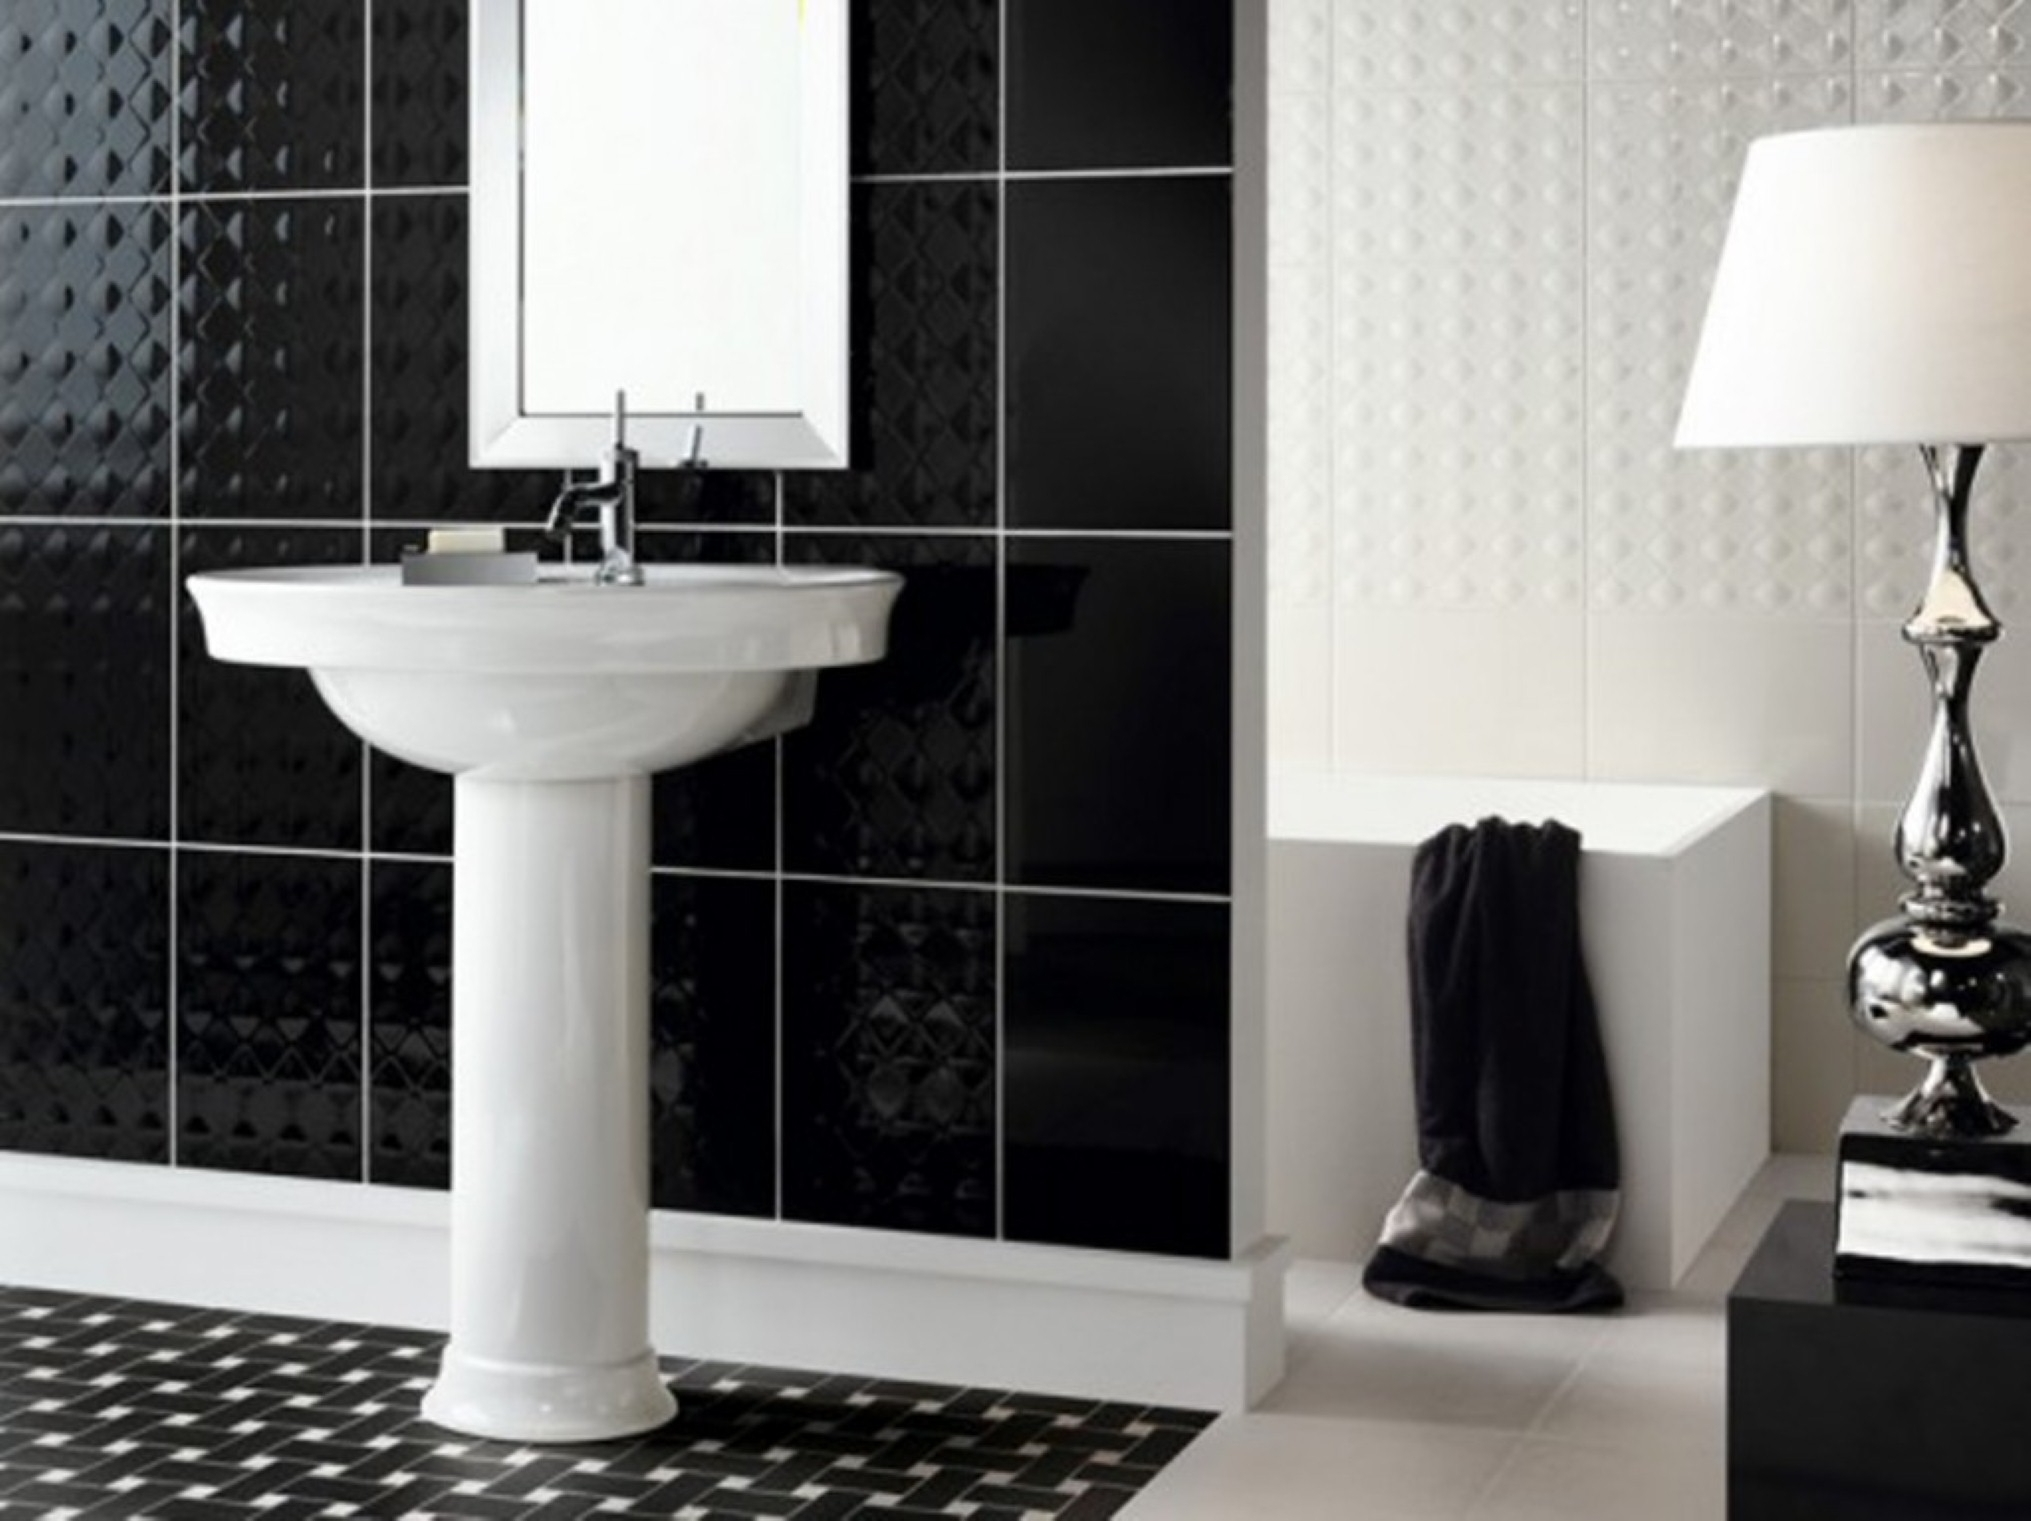 Stylish Bathroom Shower Tile Ideas In The Latest Style Of Elegant Design Ideas From Bathroom (View 3 of 23)